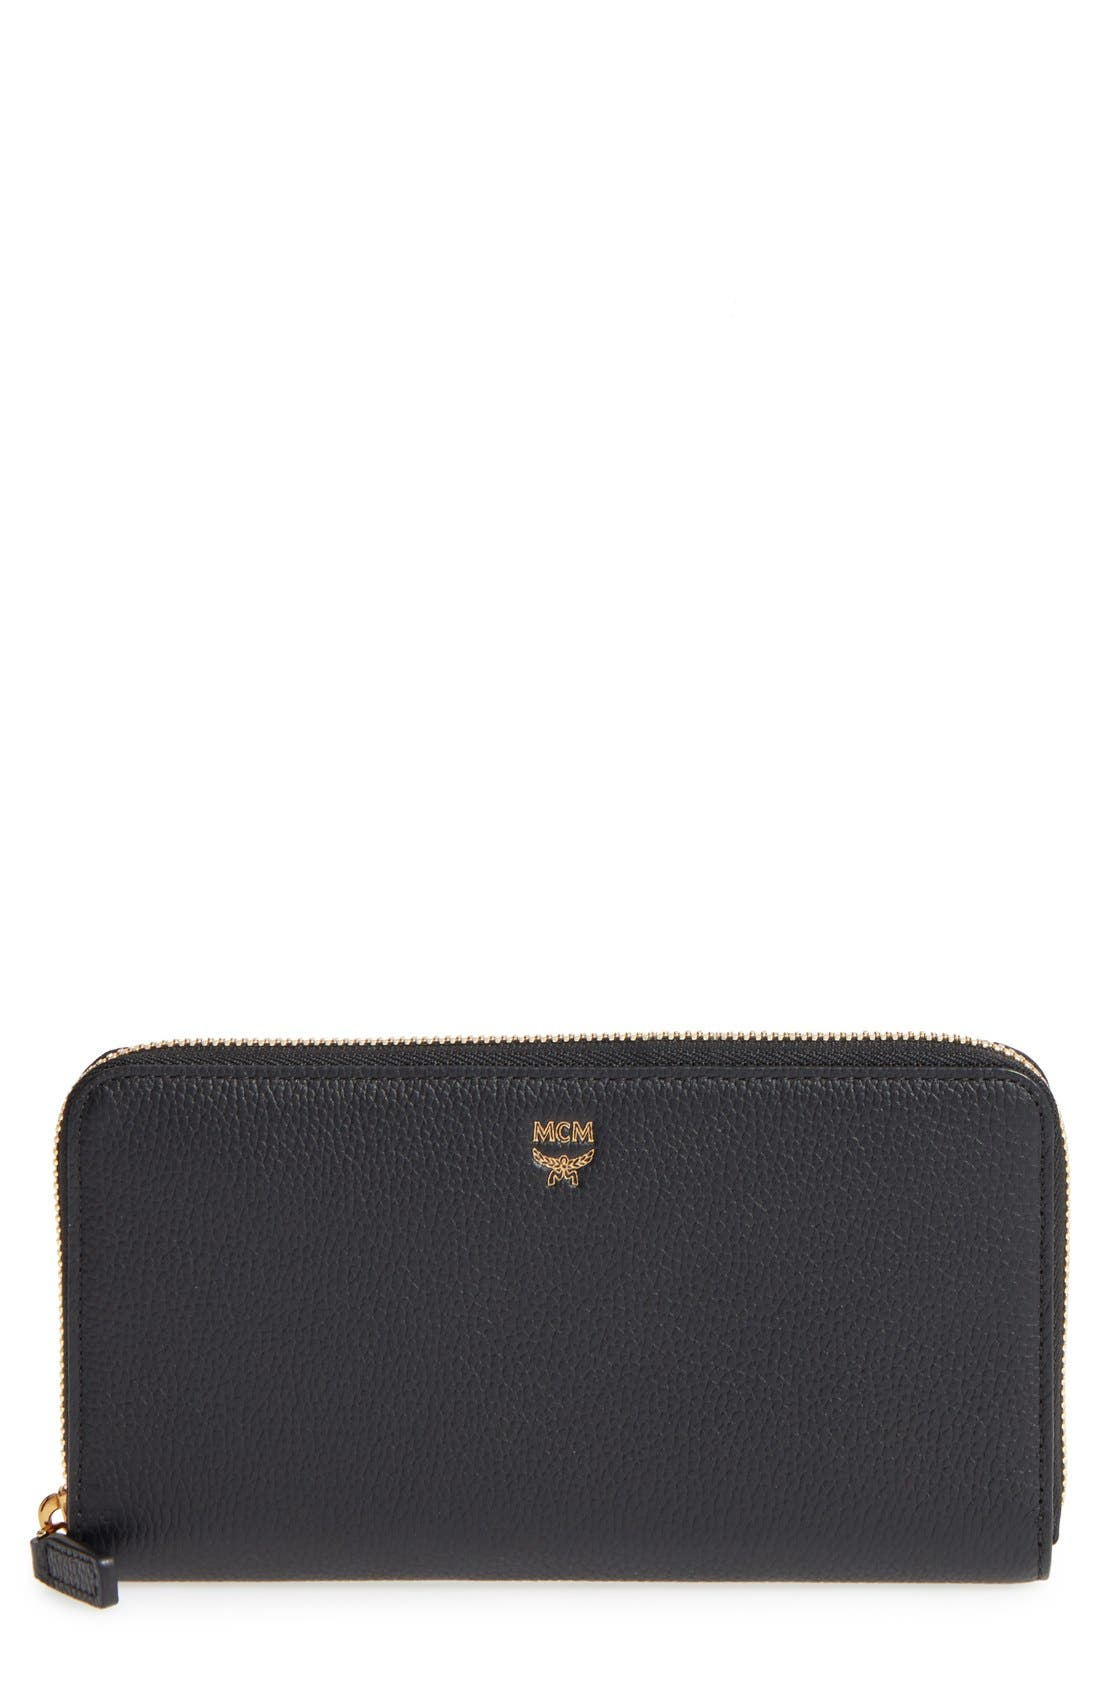 MCM Milla Leather Zip Around Wallet